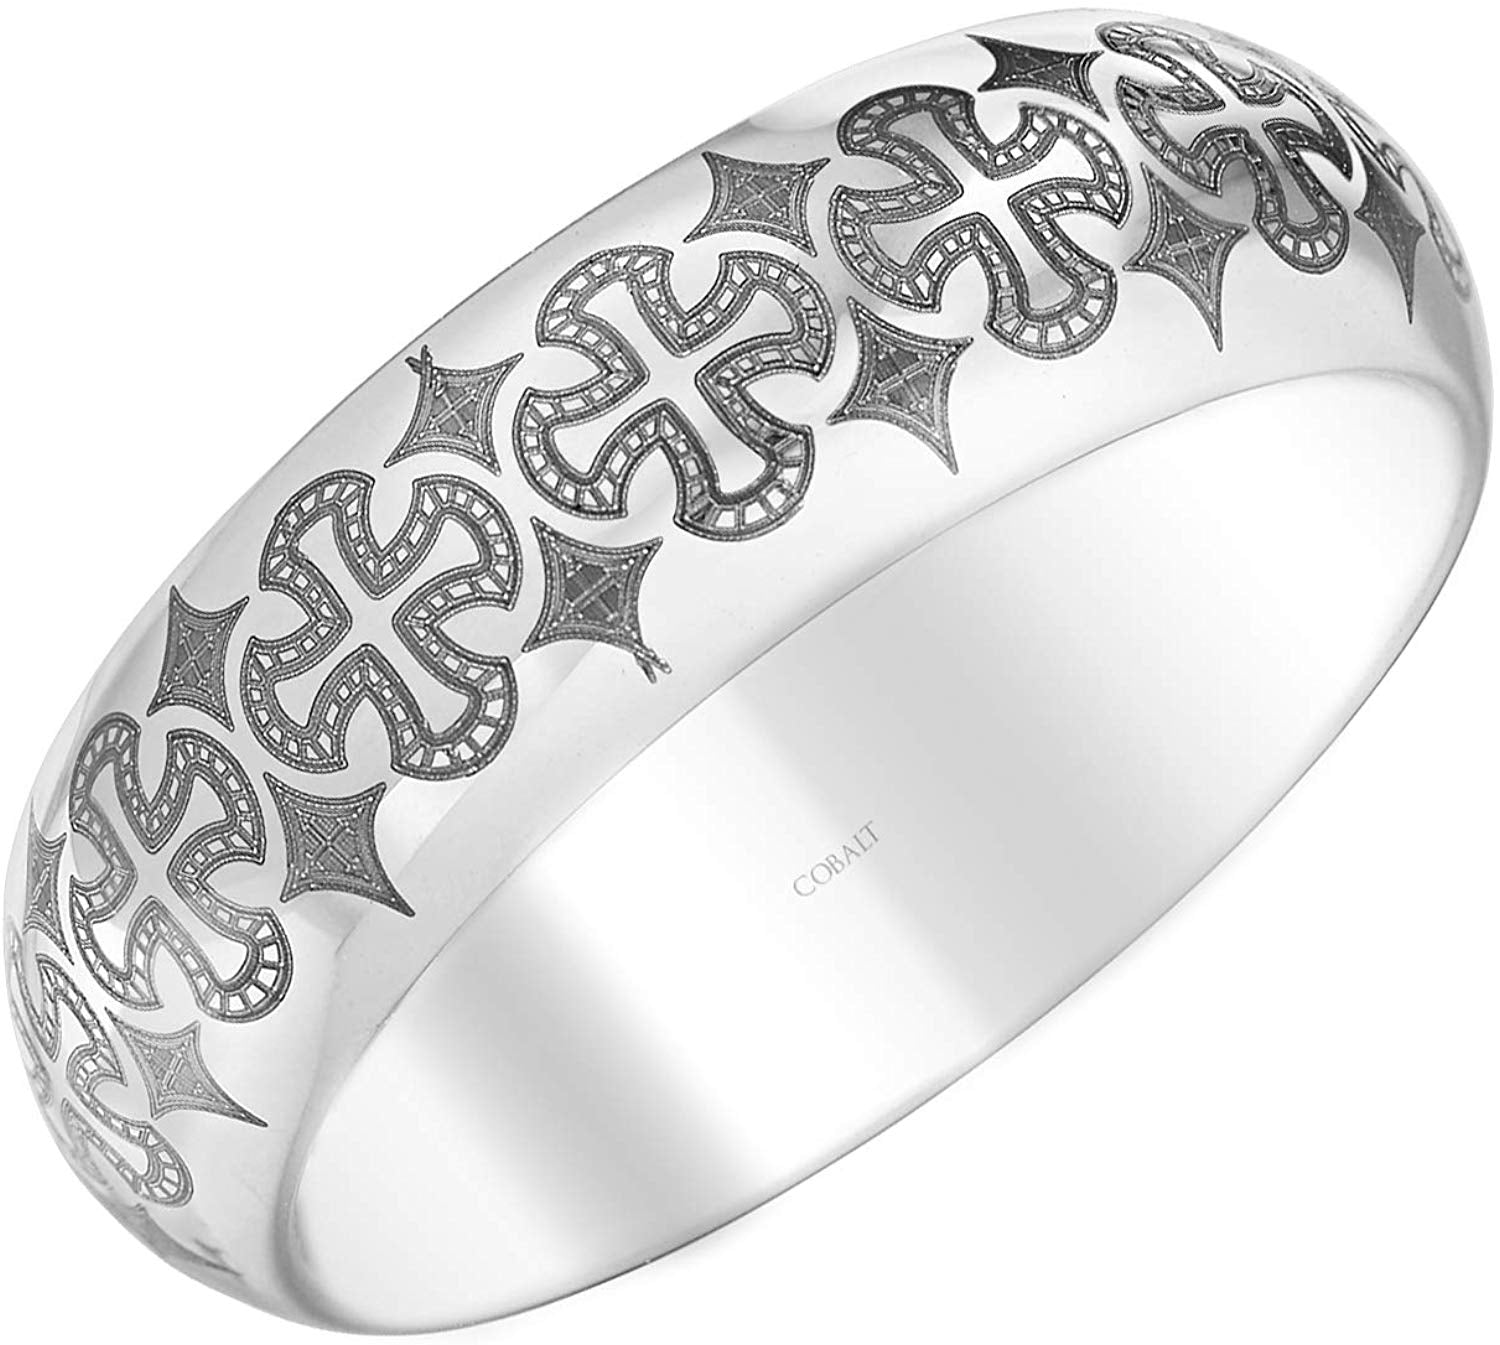 Templar Cross Design Ring - SolomonsOrder